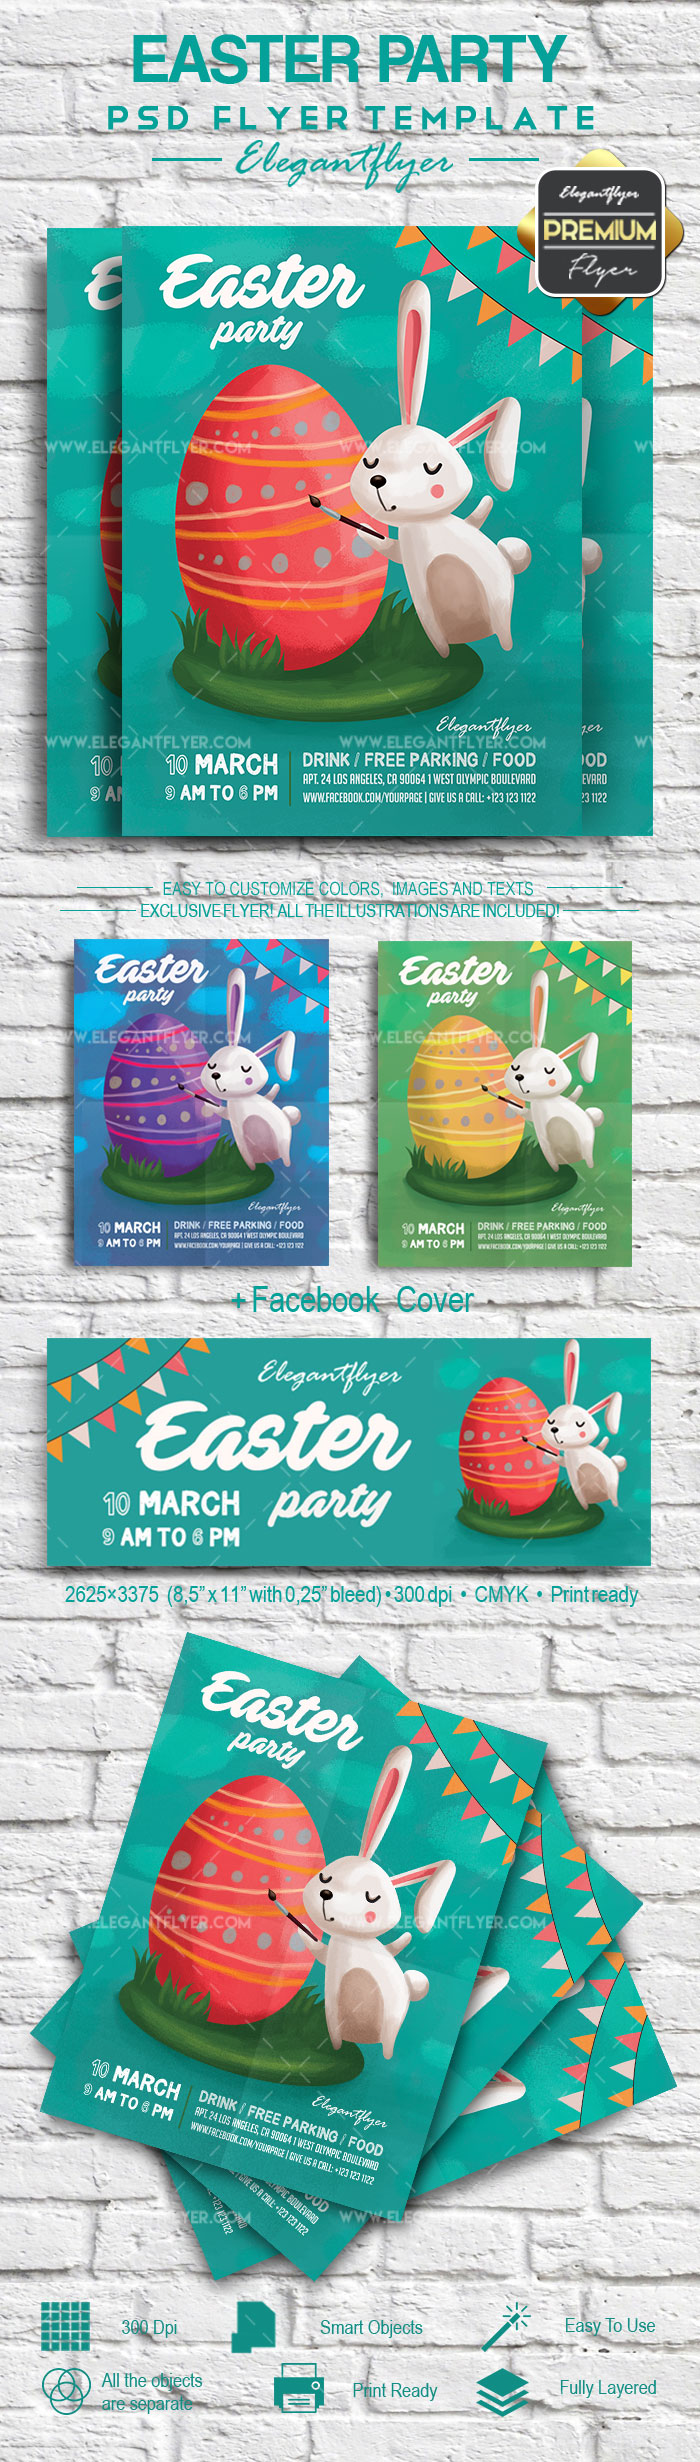 Easter Rabbit Party